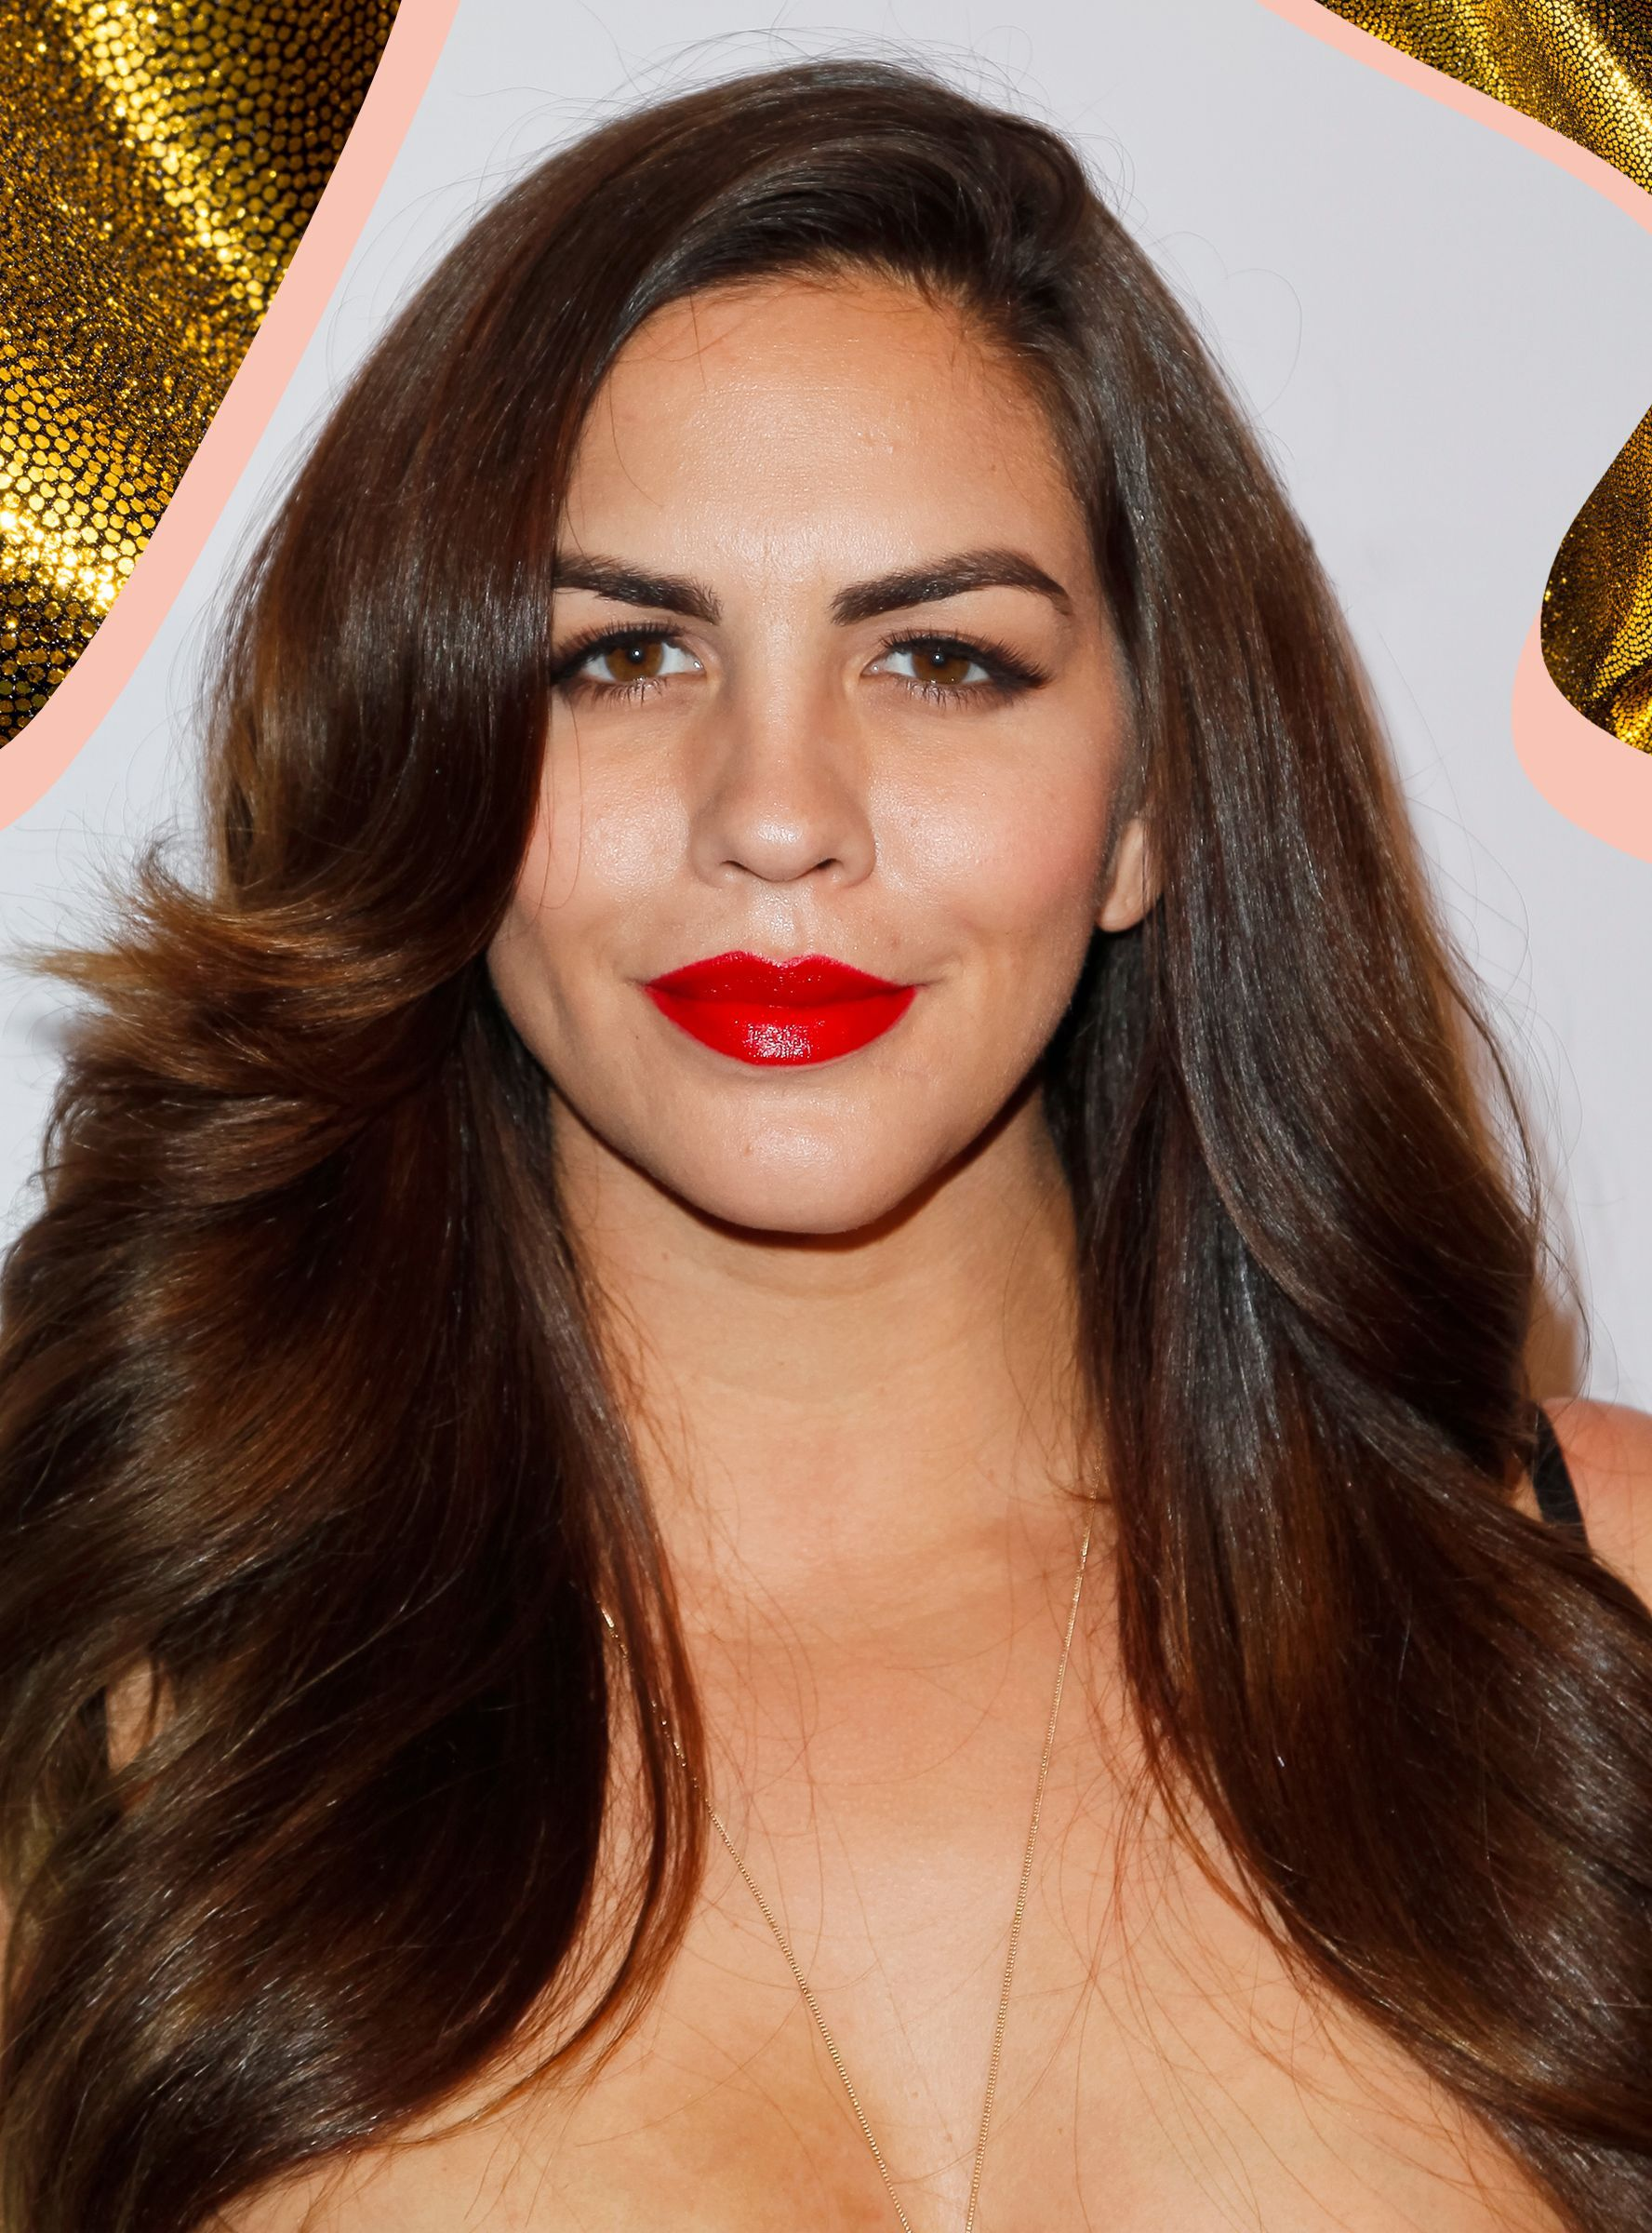 Another 'Vanderpump Rules' Star Launched A Lipstick Line